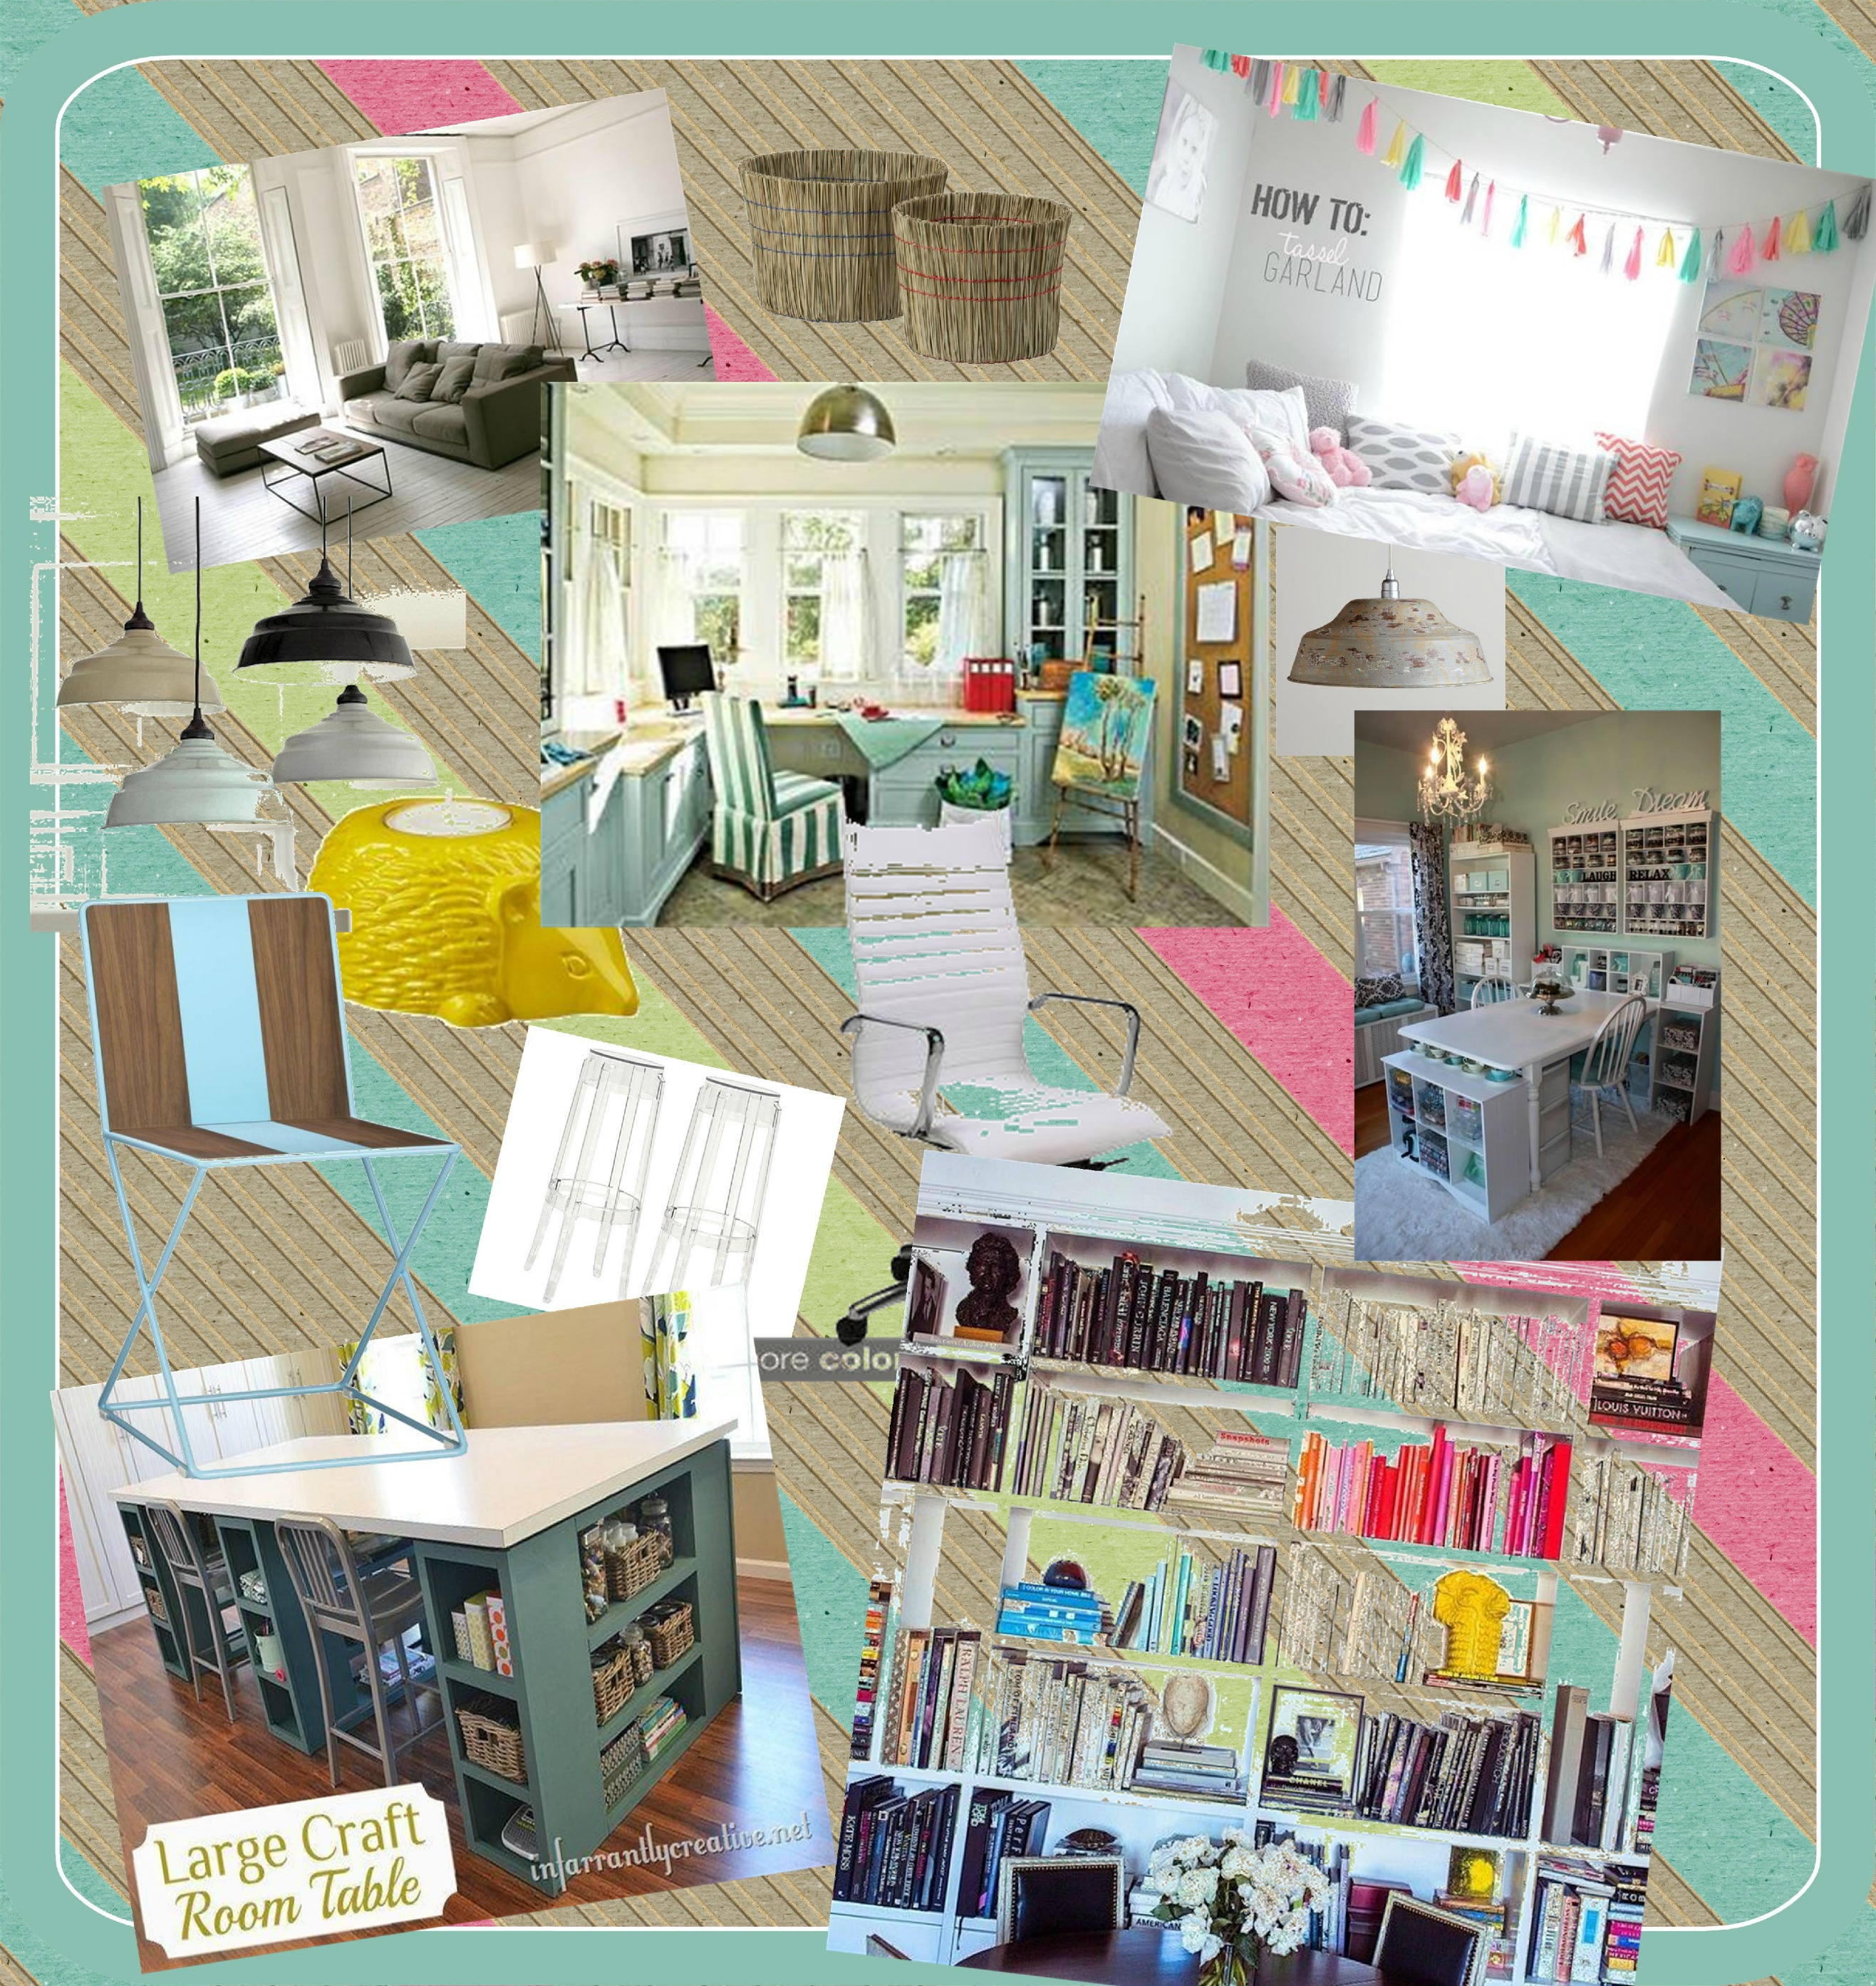 Hedoe Paper, Raleigh Stationary, Raleigh Small Business Women